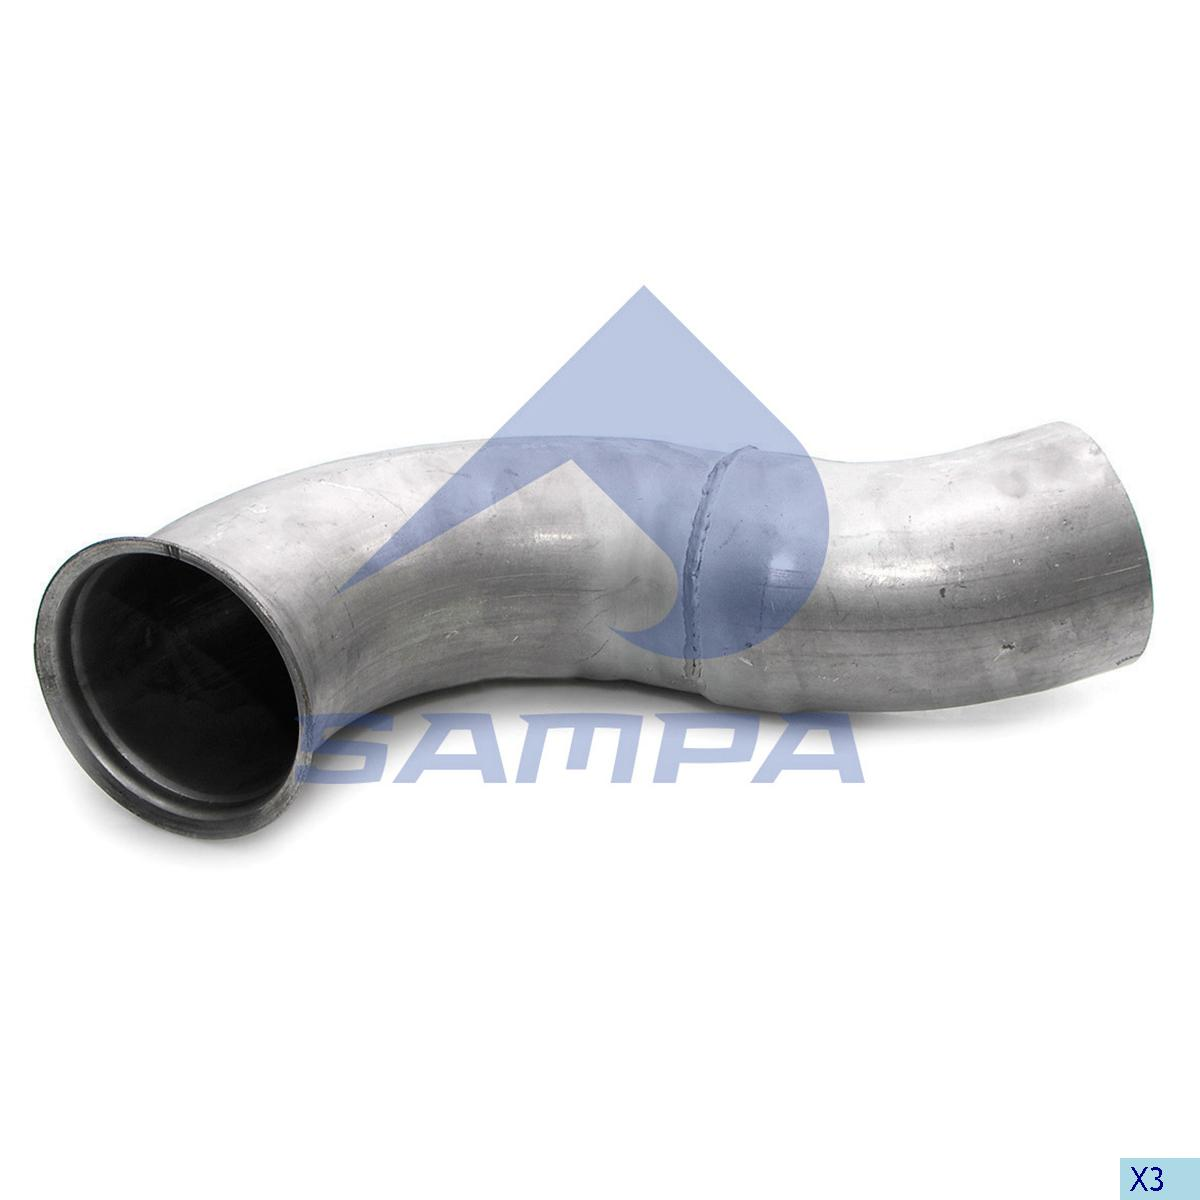 Pipe, Exhaust, Daf, Engine